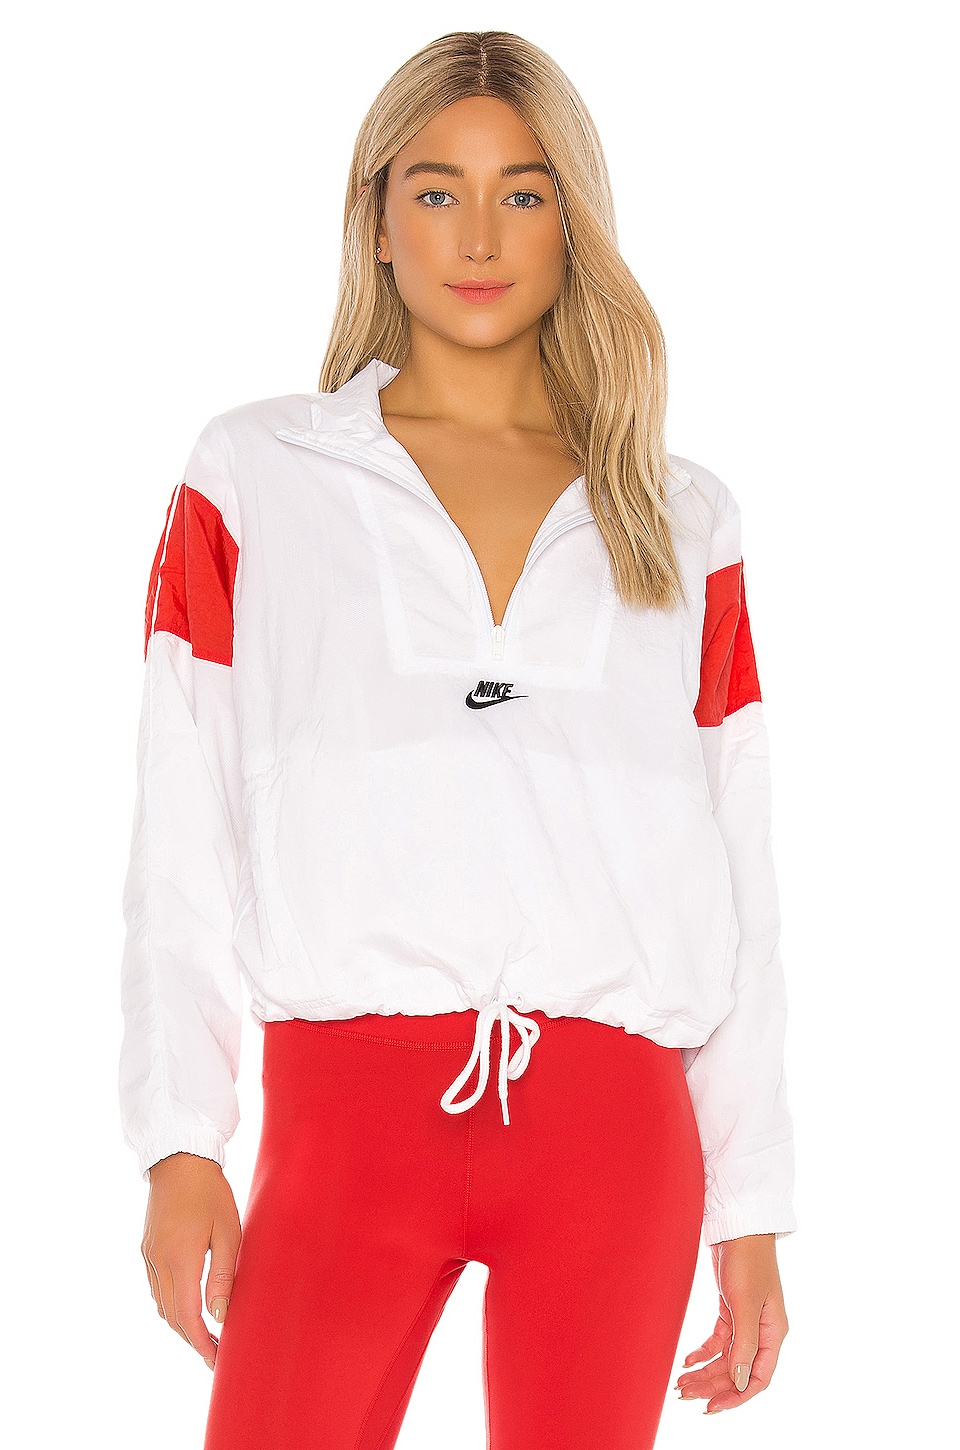 Nike NSW Woven Jacket in White, Track Red & Black